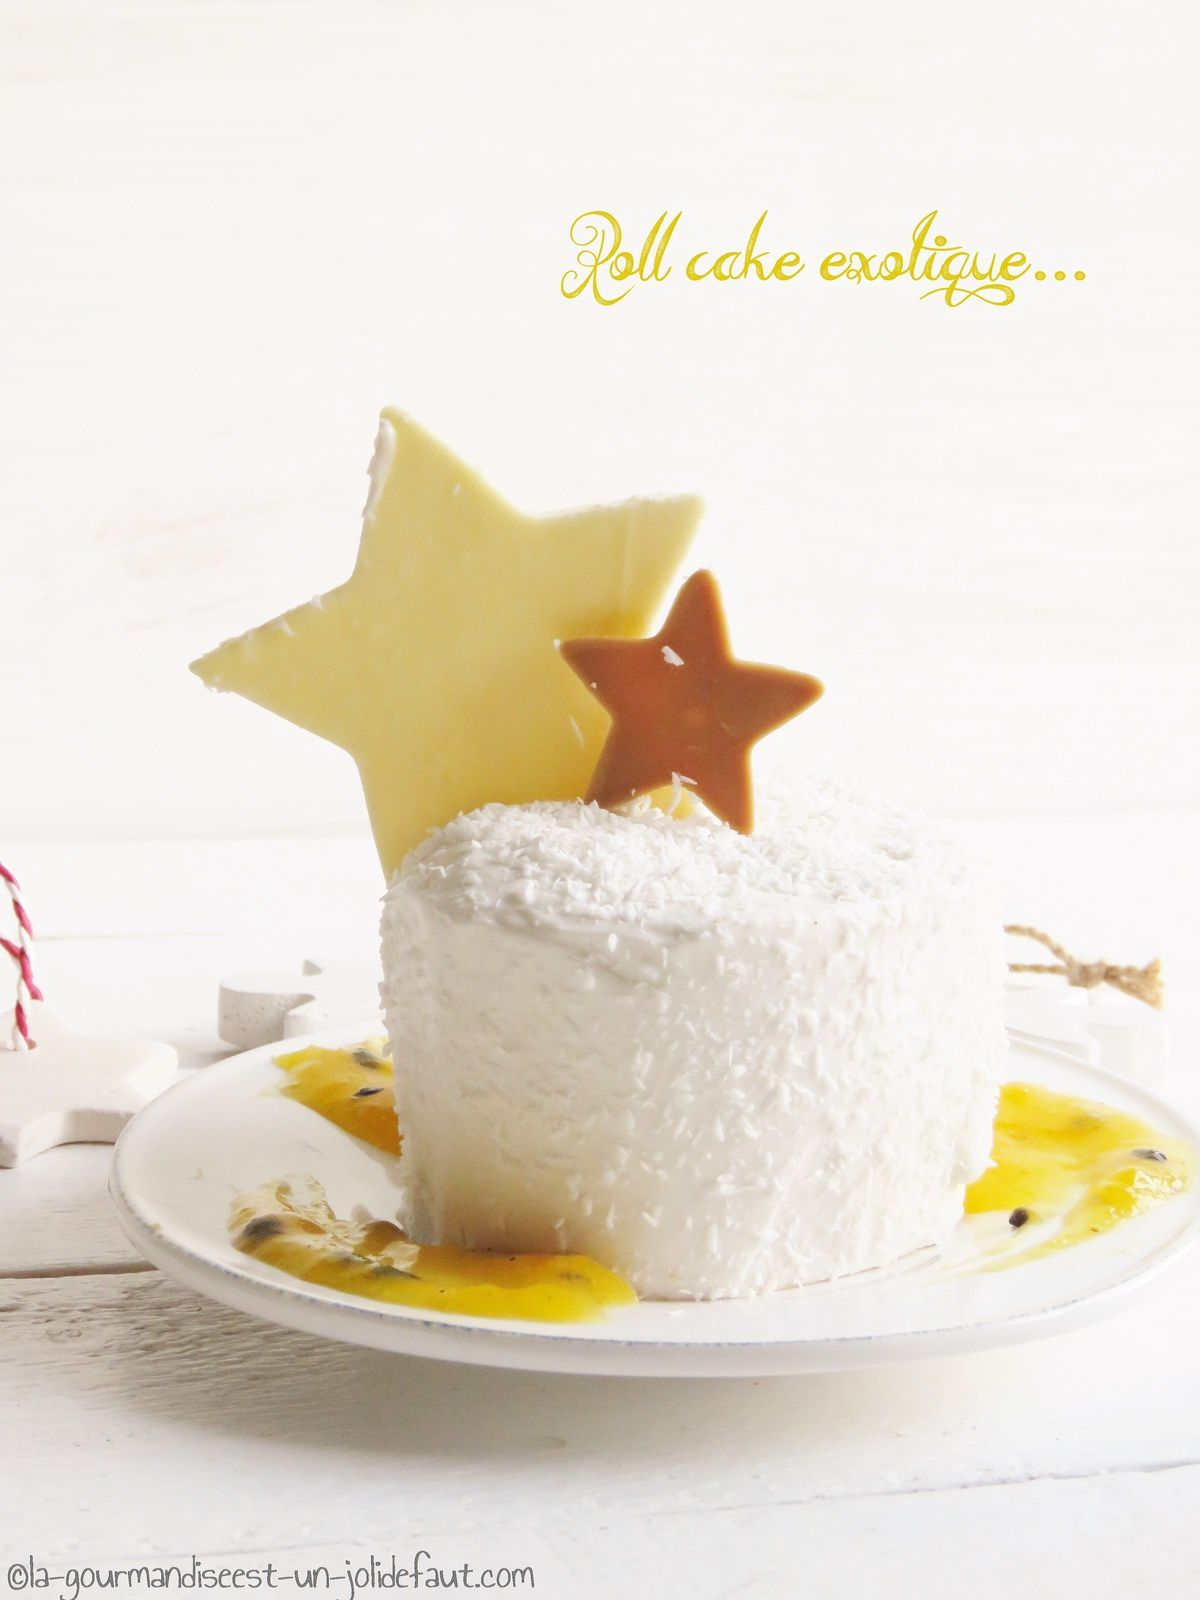 Roll-cakes exotiques